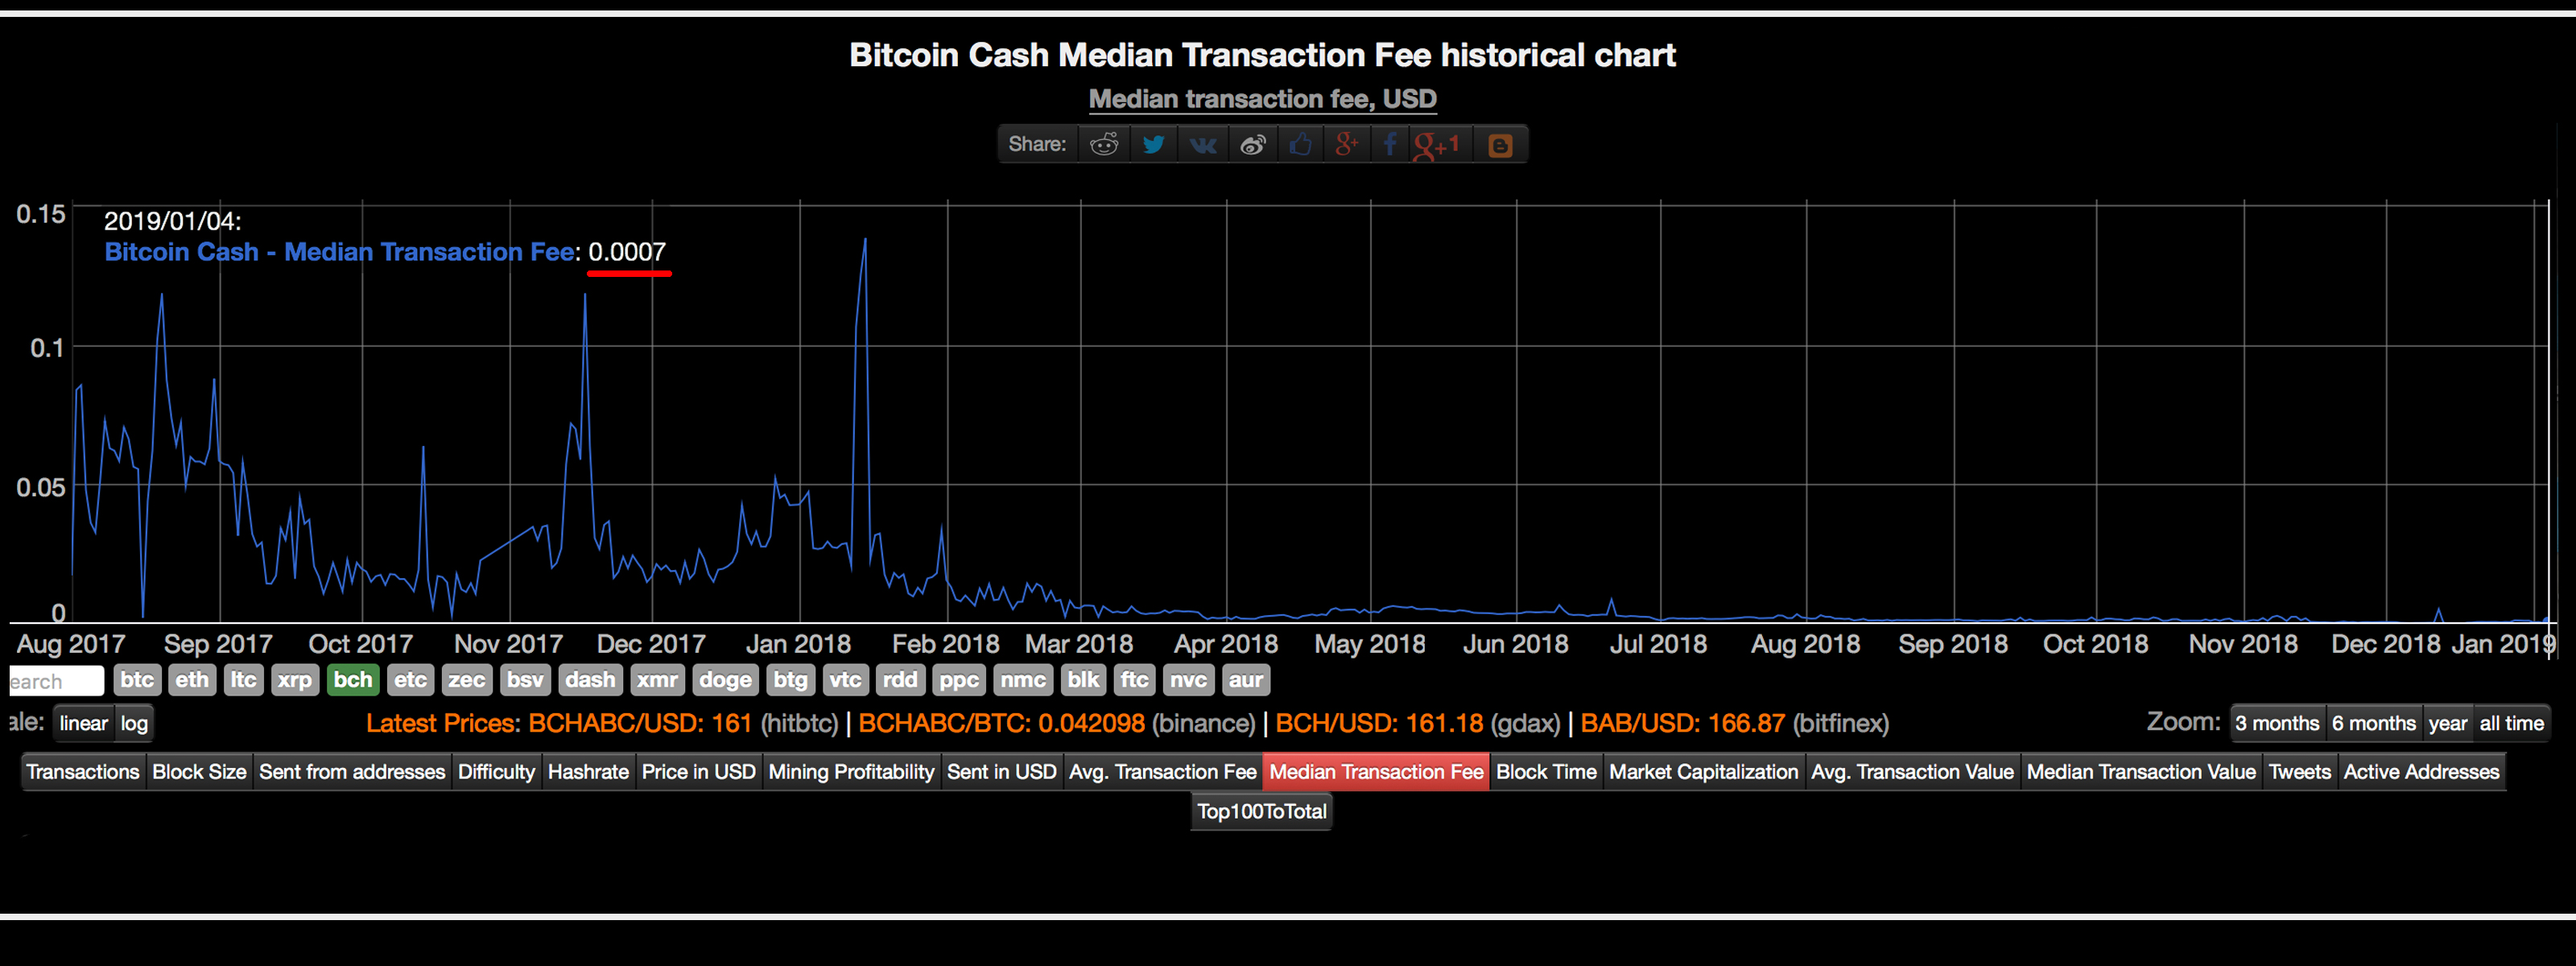 Bitcoin Cash Transaction Fees Were Less Than a Cent Throughout Most of 2018